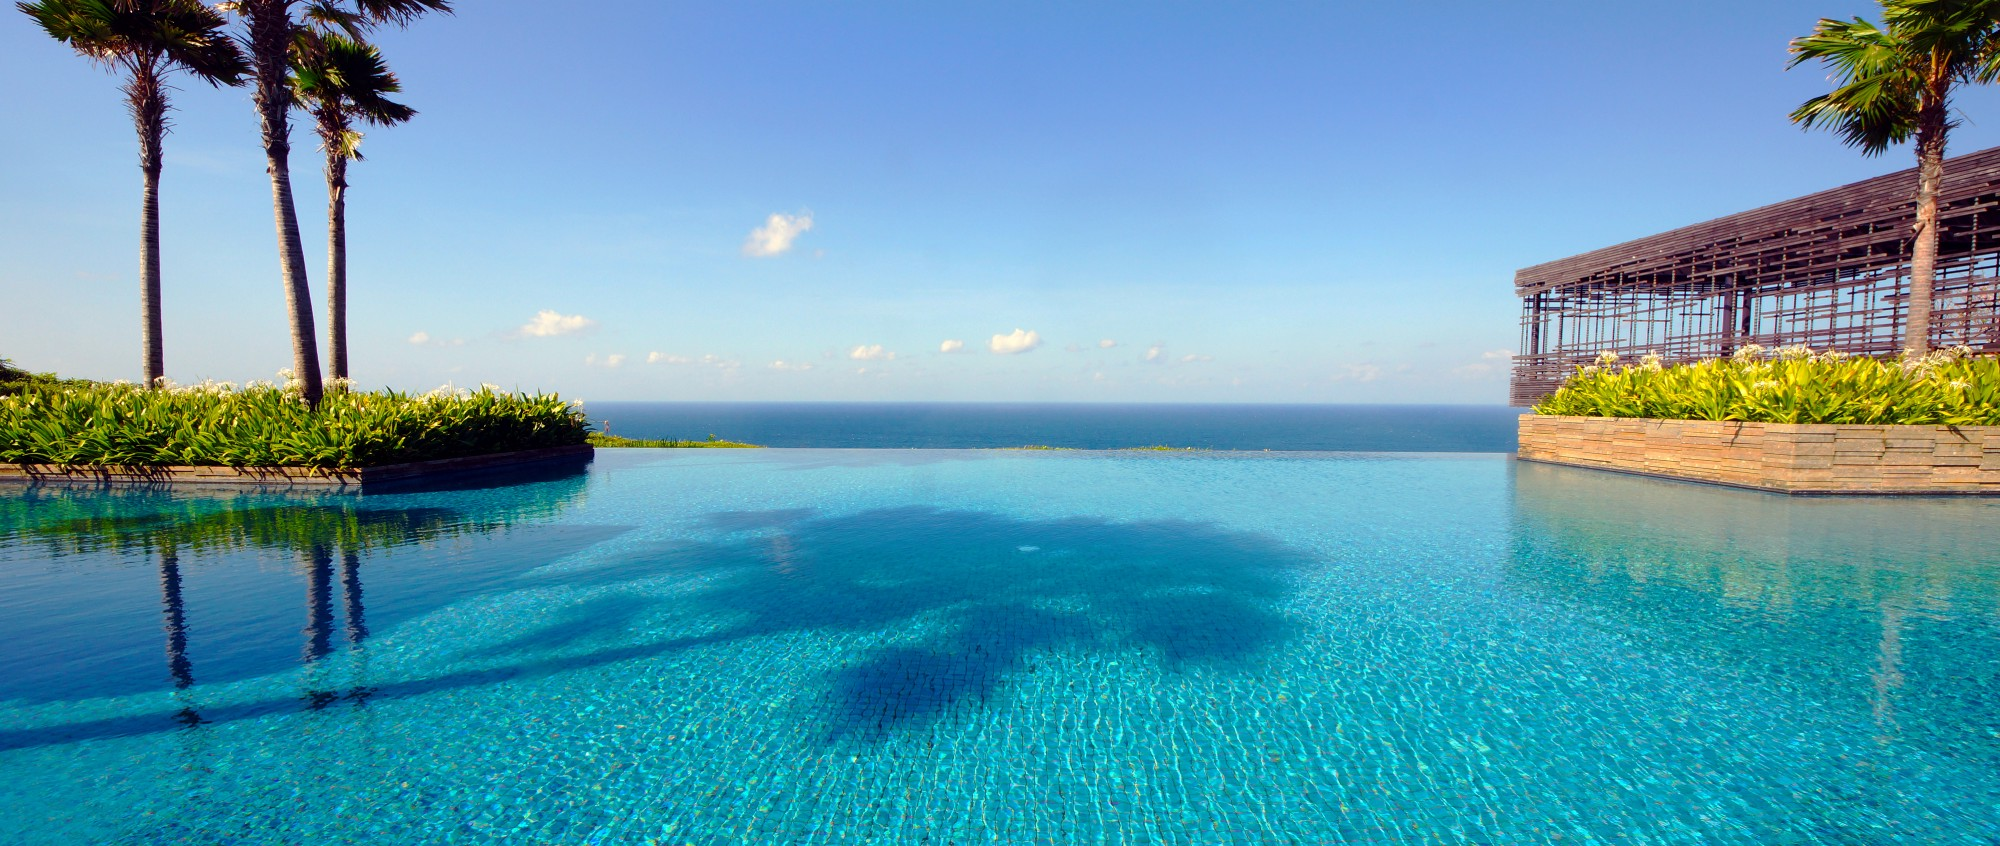 Distractions Are A Nuisance, But Infinity Pools Are The